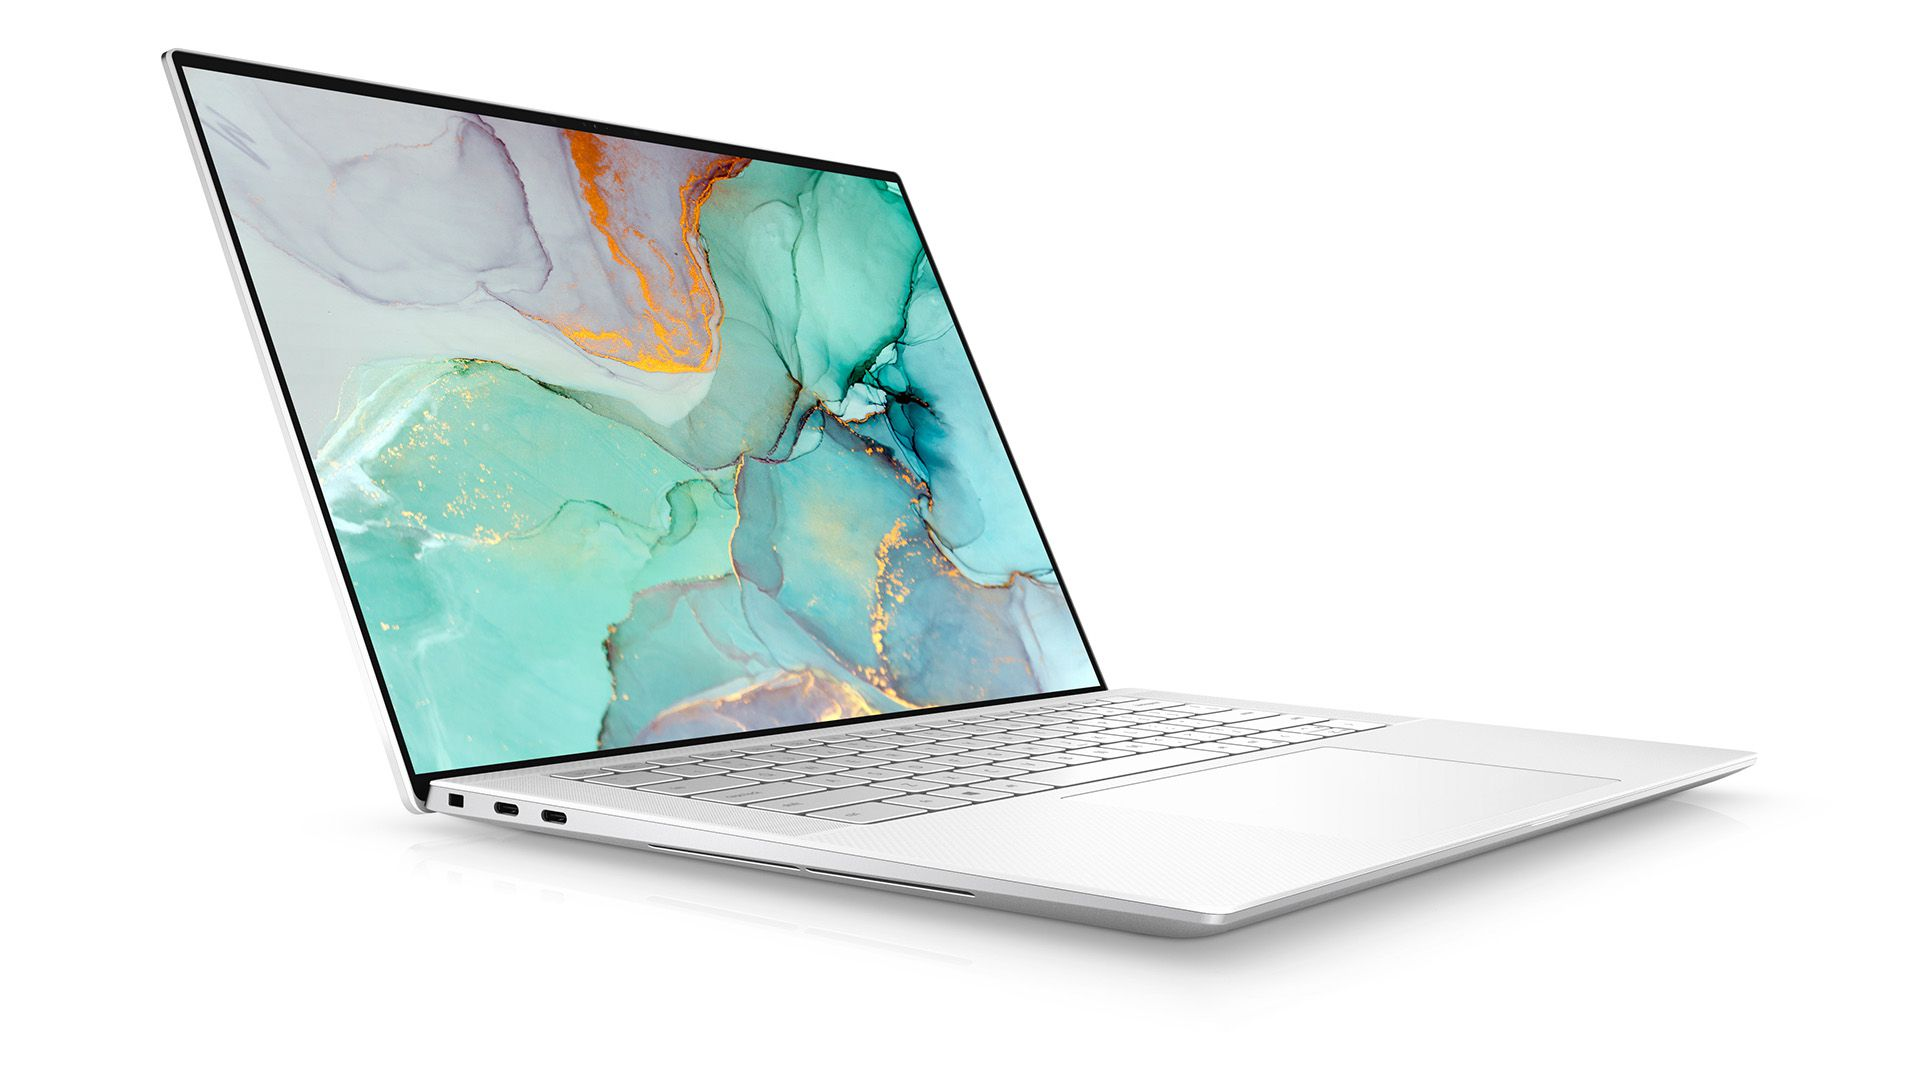 The 2021 Dell XPS 15 when viewed from an angle